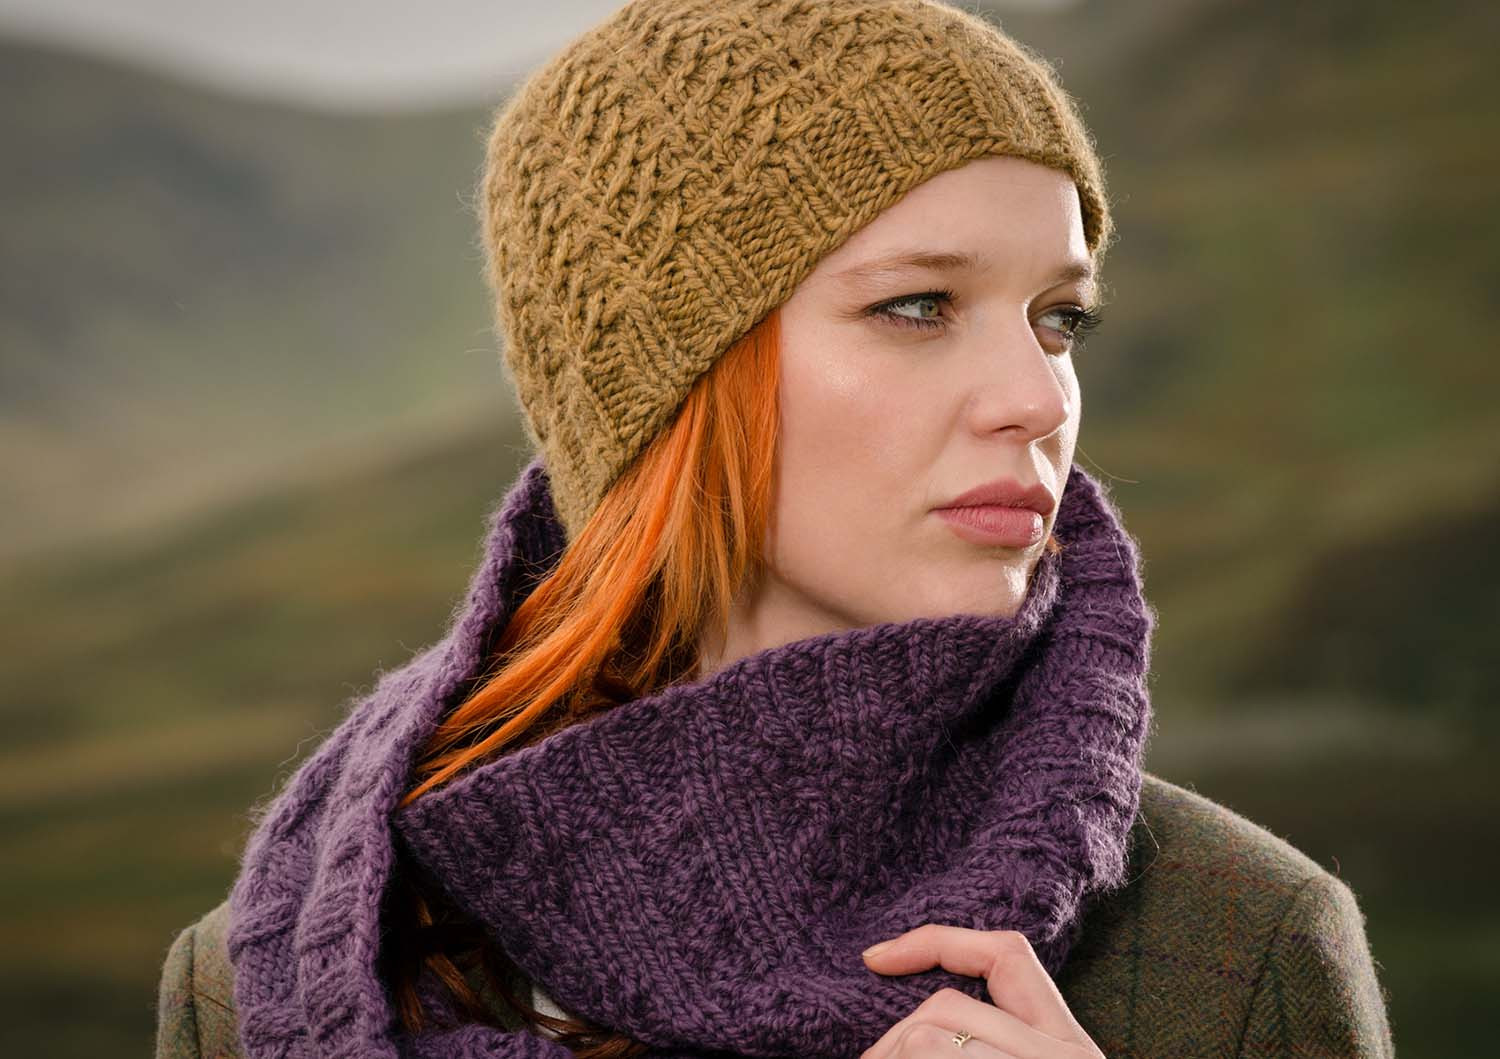 Knit Hat Patterns Inspirational 6 Knitted Hat Patterns for Women the Fibre Co Of Gorgeous 49 Pictures Knit Hat Patterns